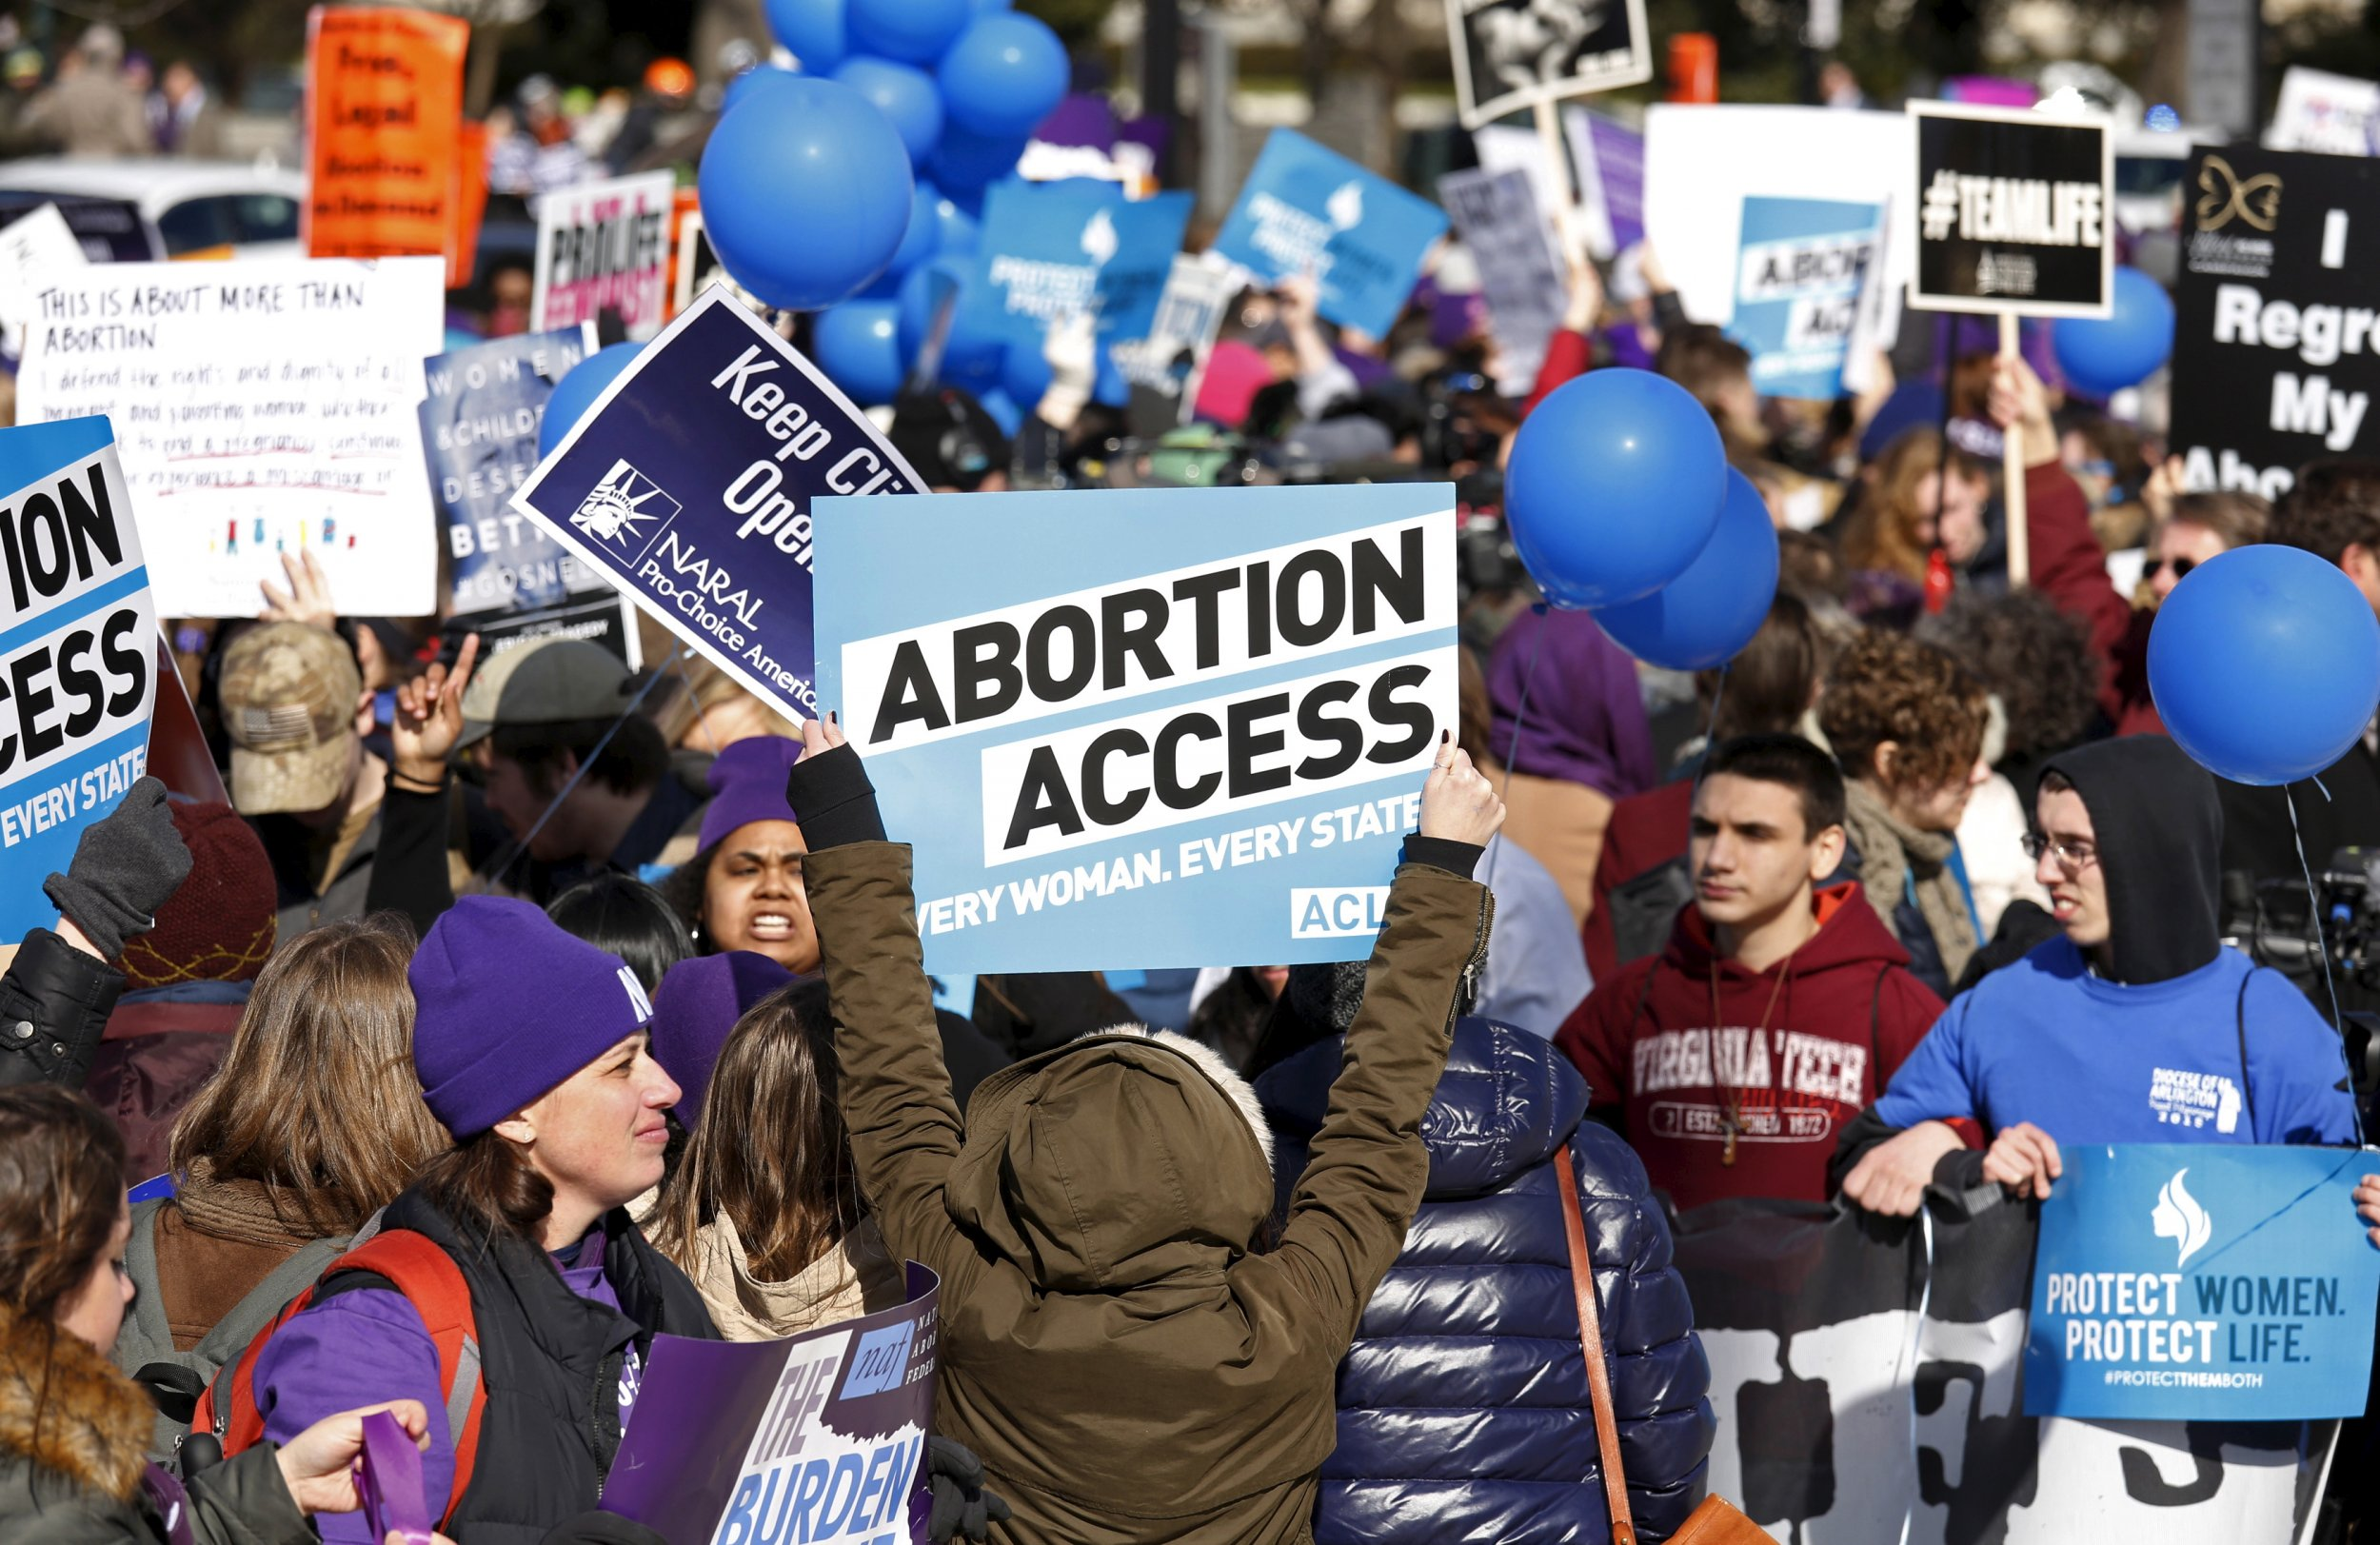 americorps_abortion_services_0426